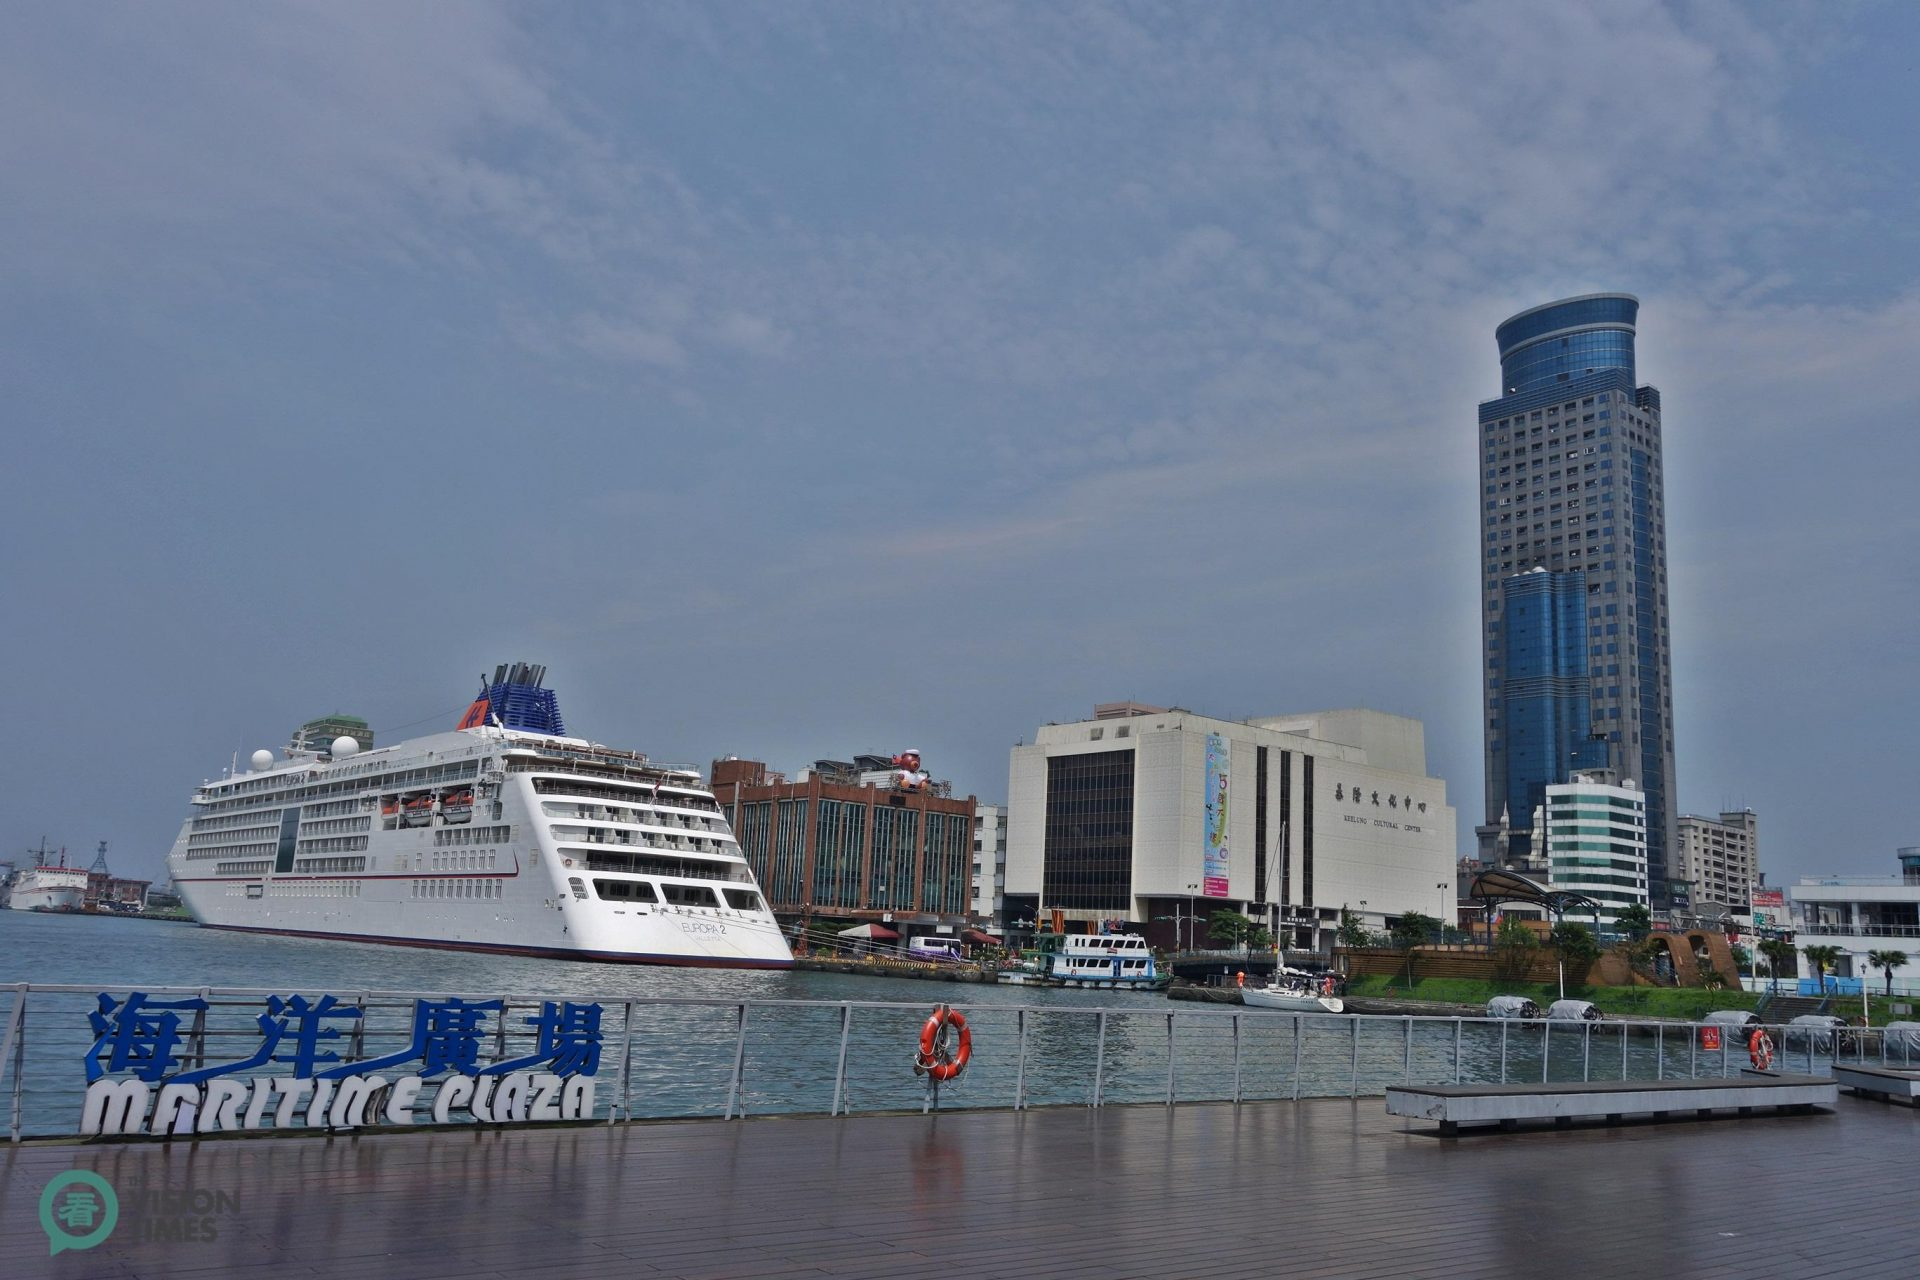 The Keelung Maritime Plaza in front of Keelung Train Station. (Image: Niou Chi-Ping / Vision Times)